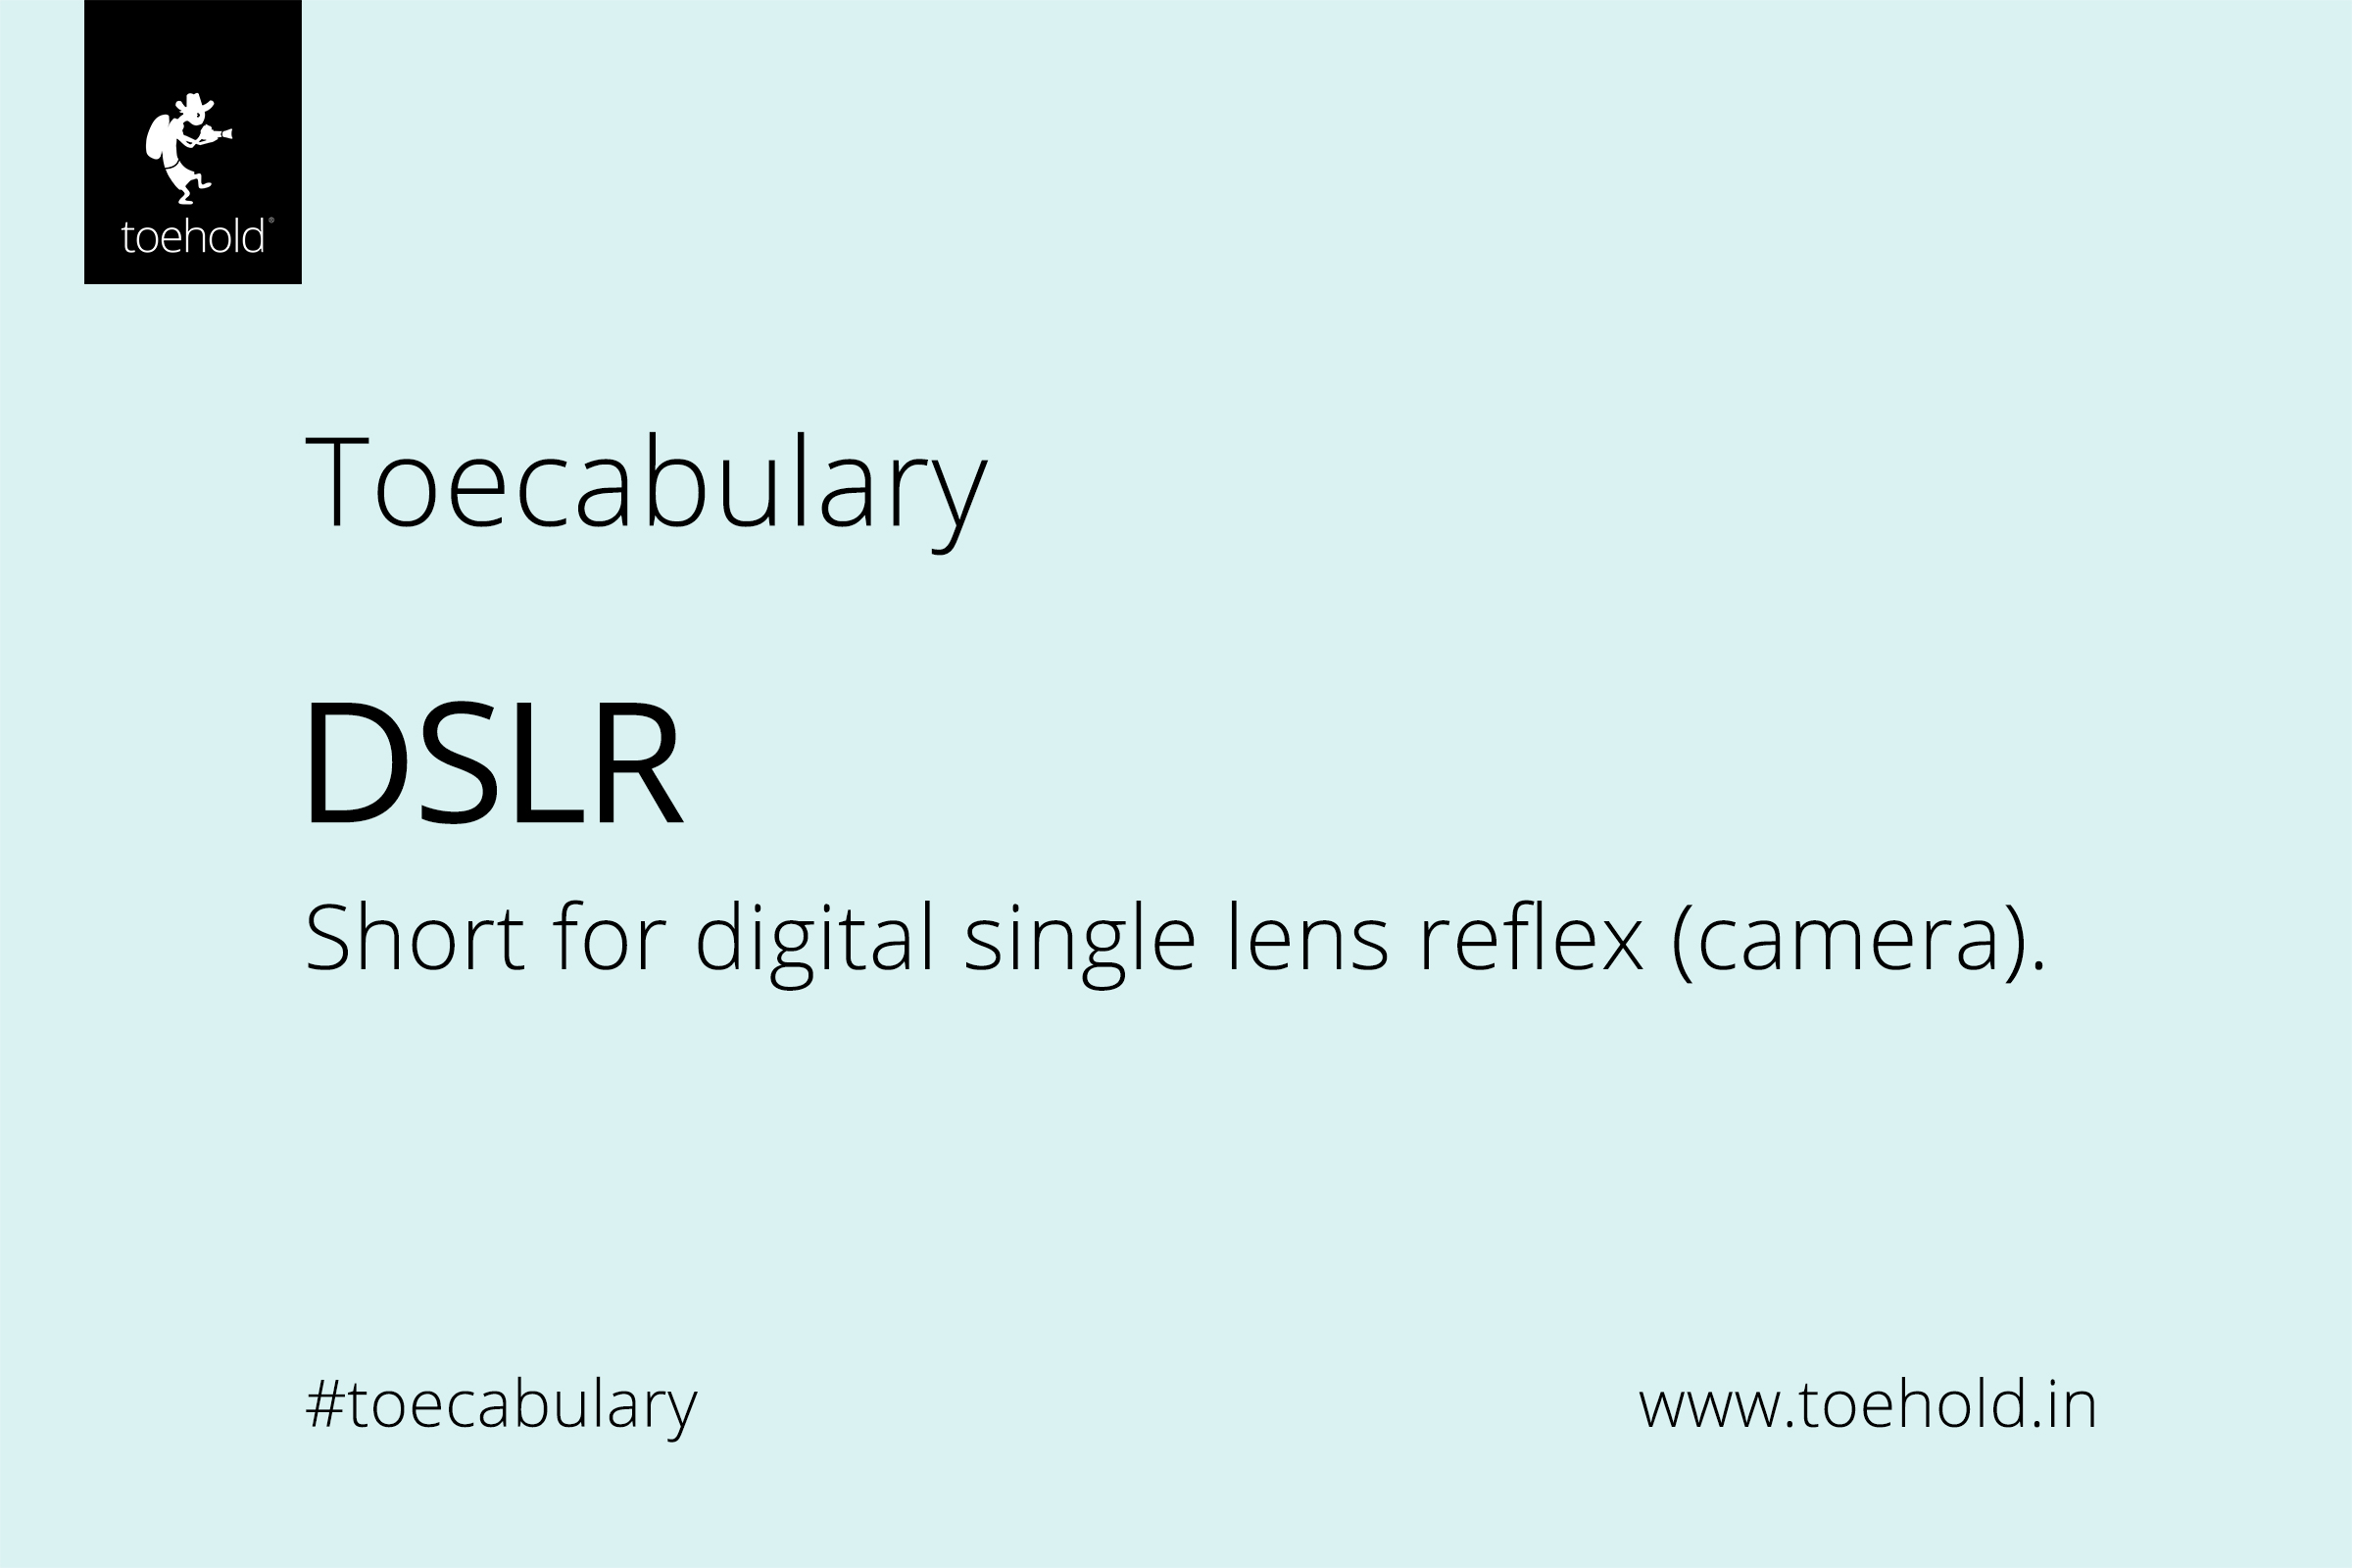 DSLR definition post 2021